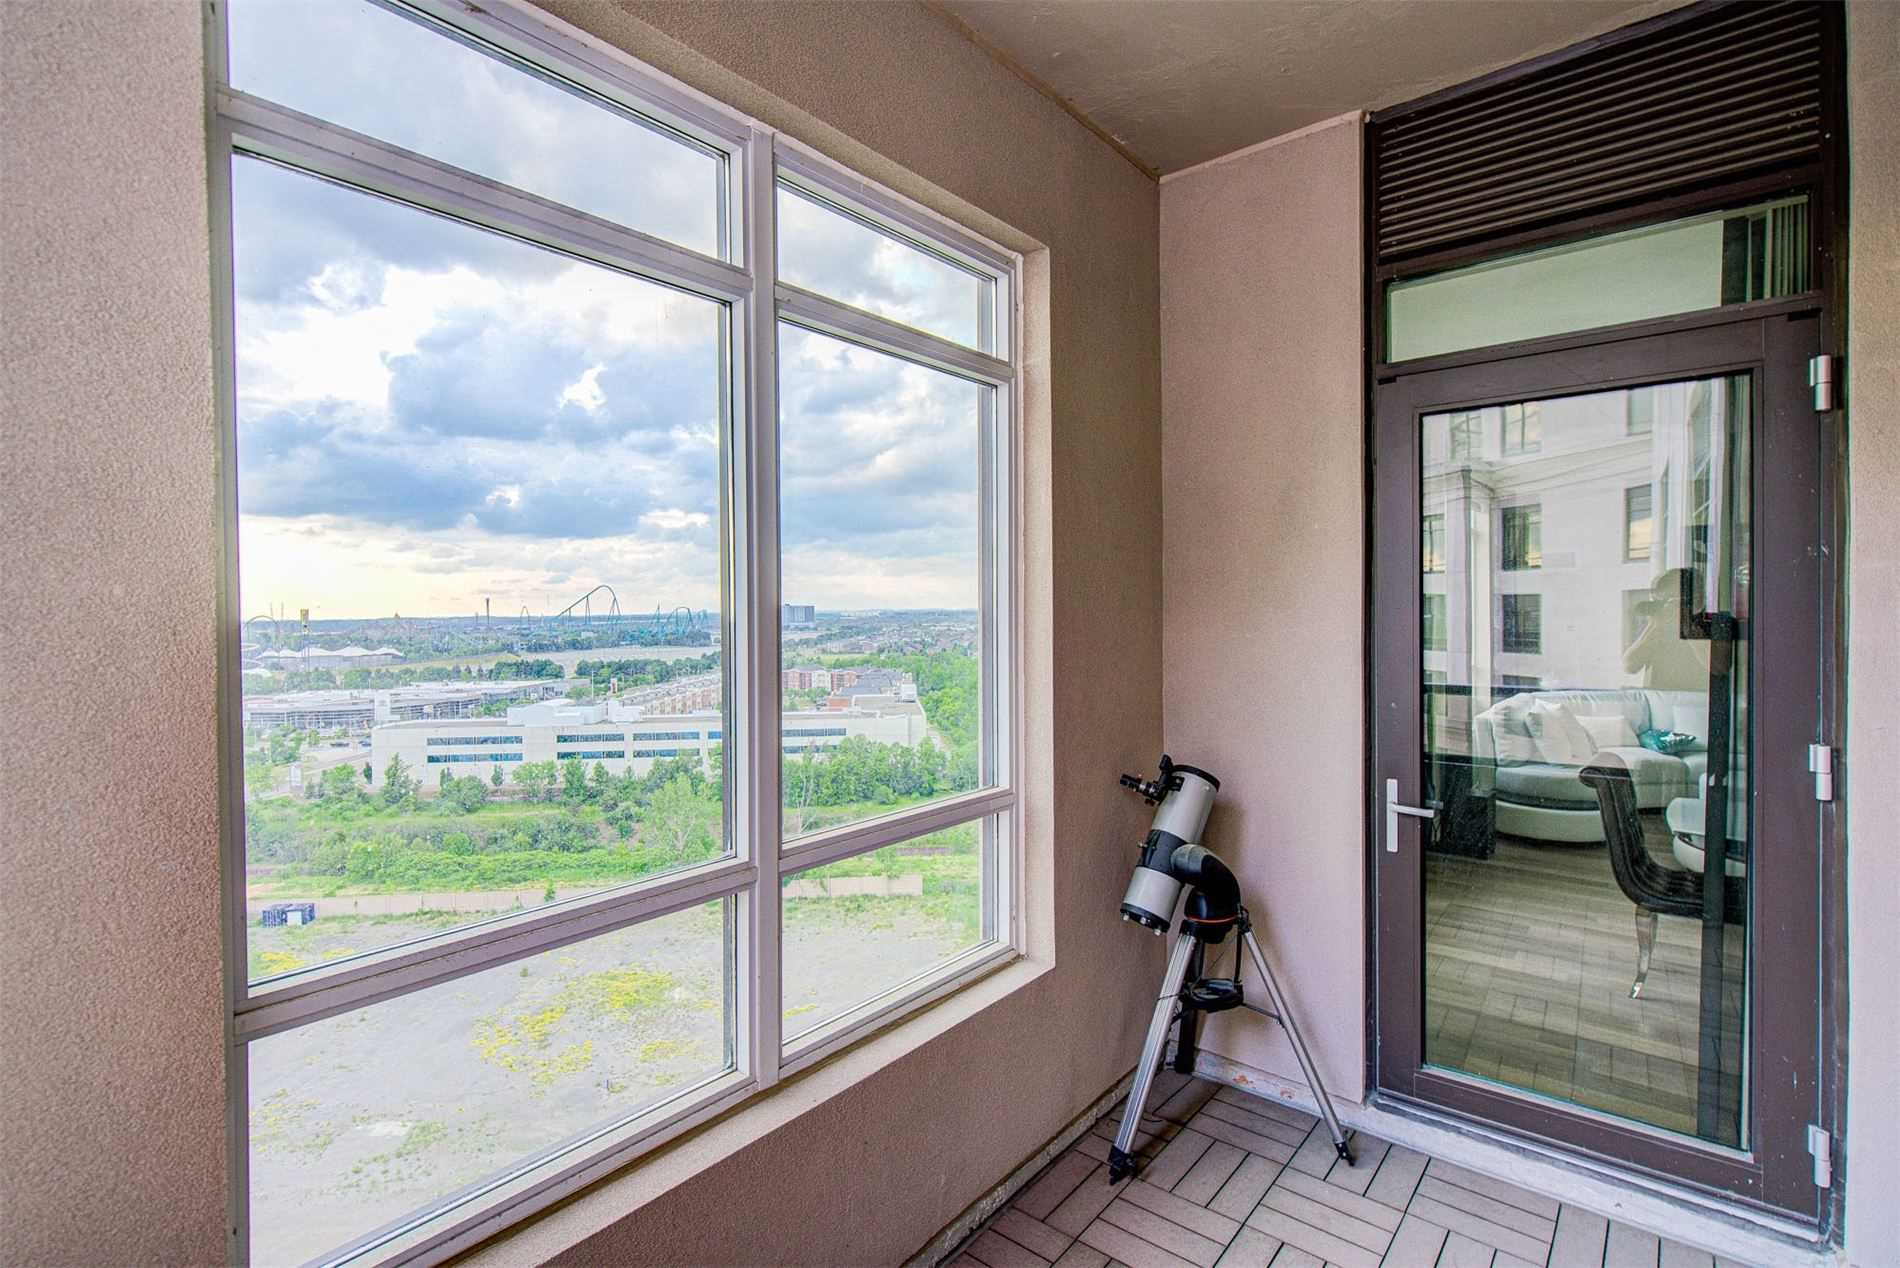 Image 20 of 39 showing inside of 2 Bedroom Condo Apt Apartment for Sale at 9255 Jane St Unit# 1603, Vaughan L6A0K1